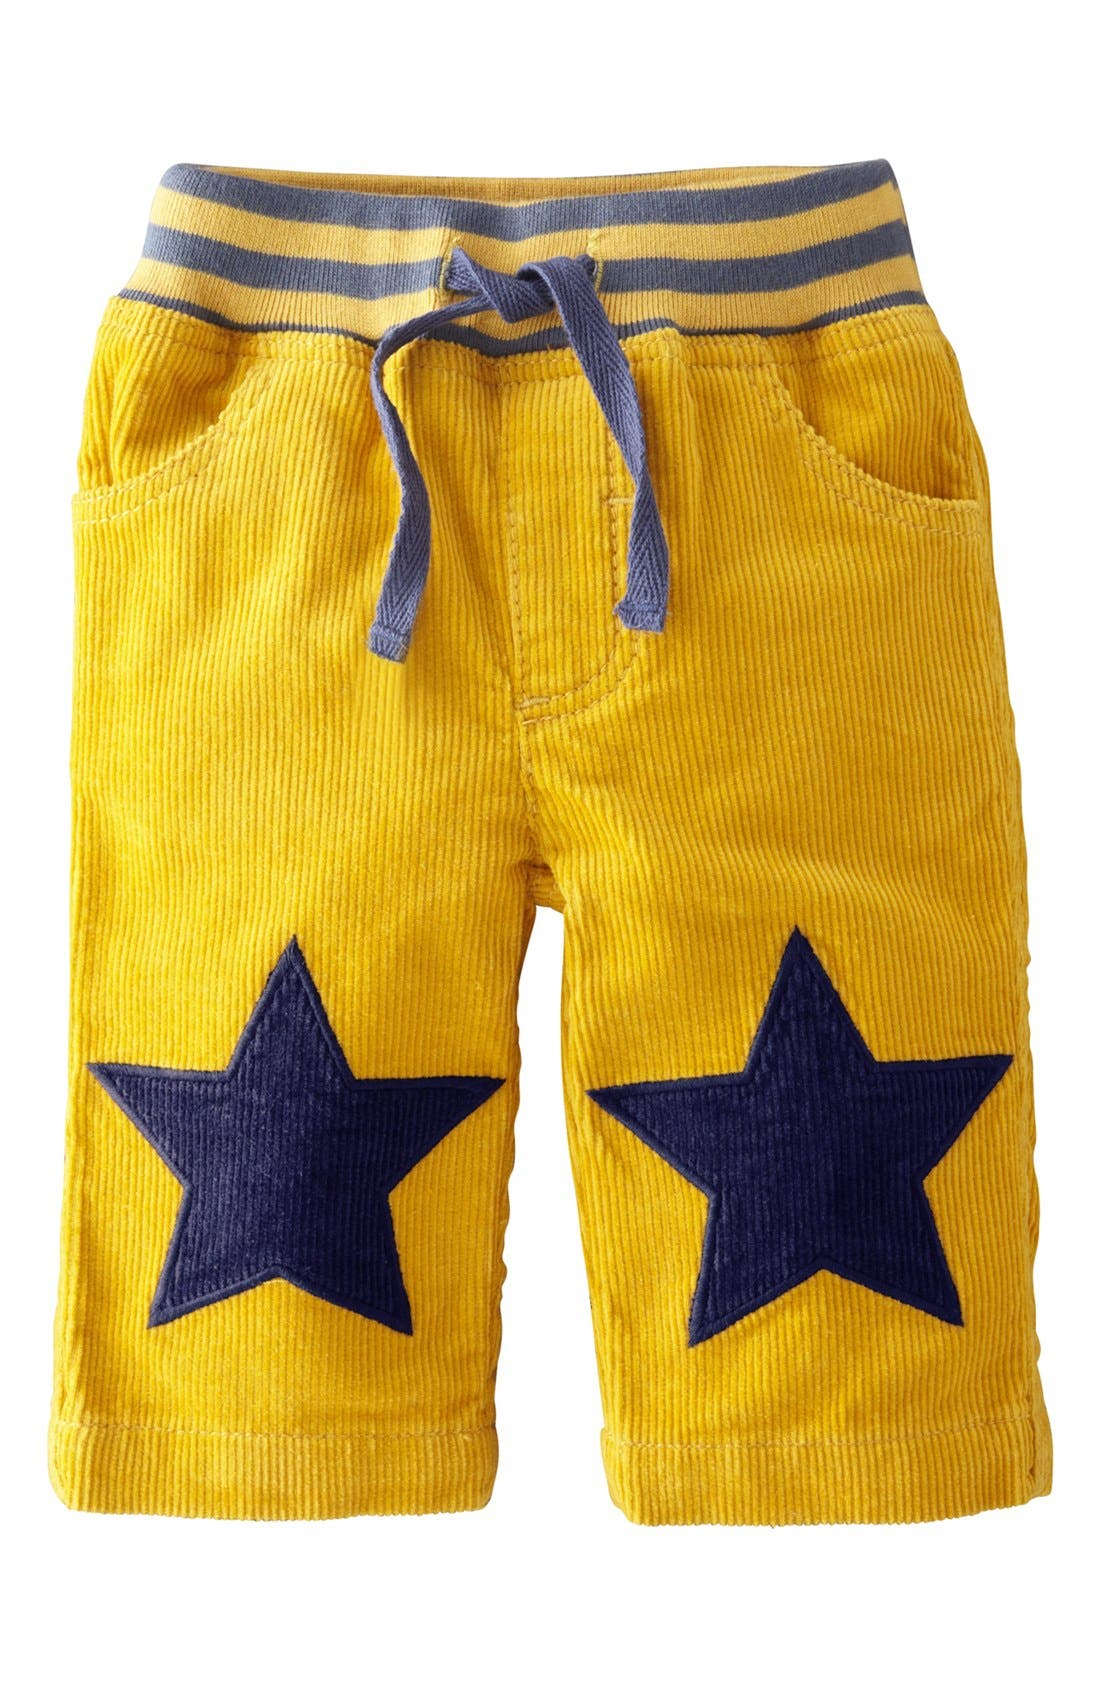 Main Image - Mini Boden 'Star Patch' Pants (Baby Boys)